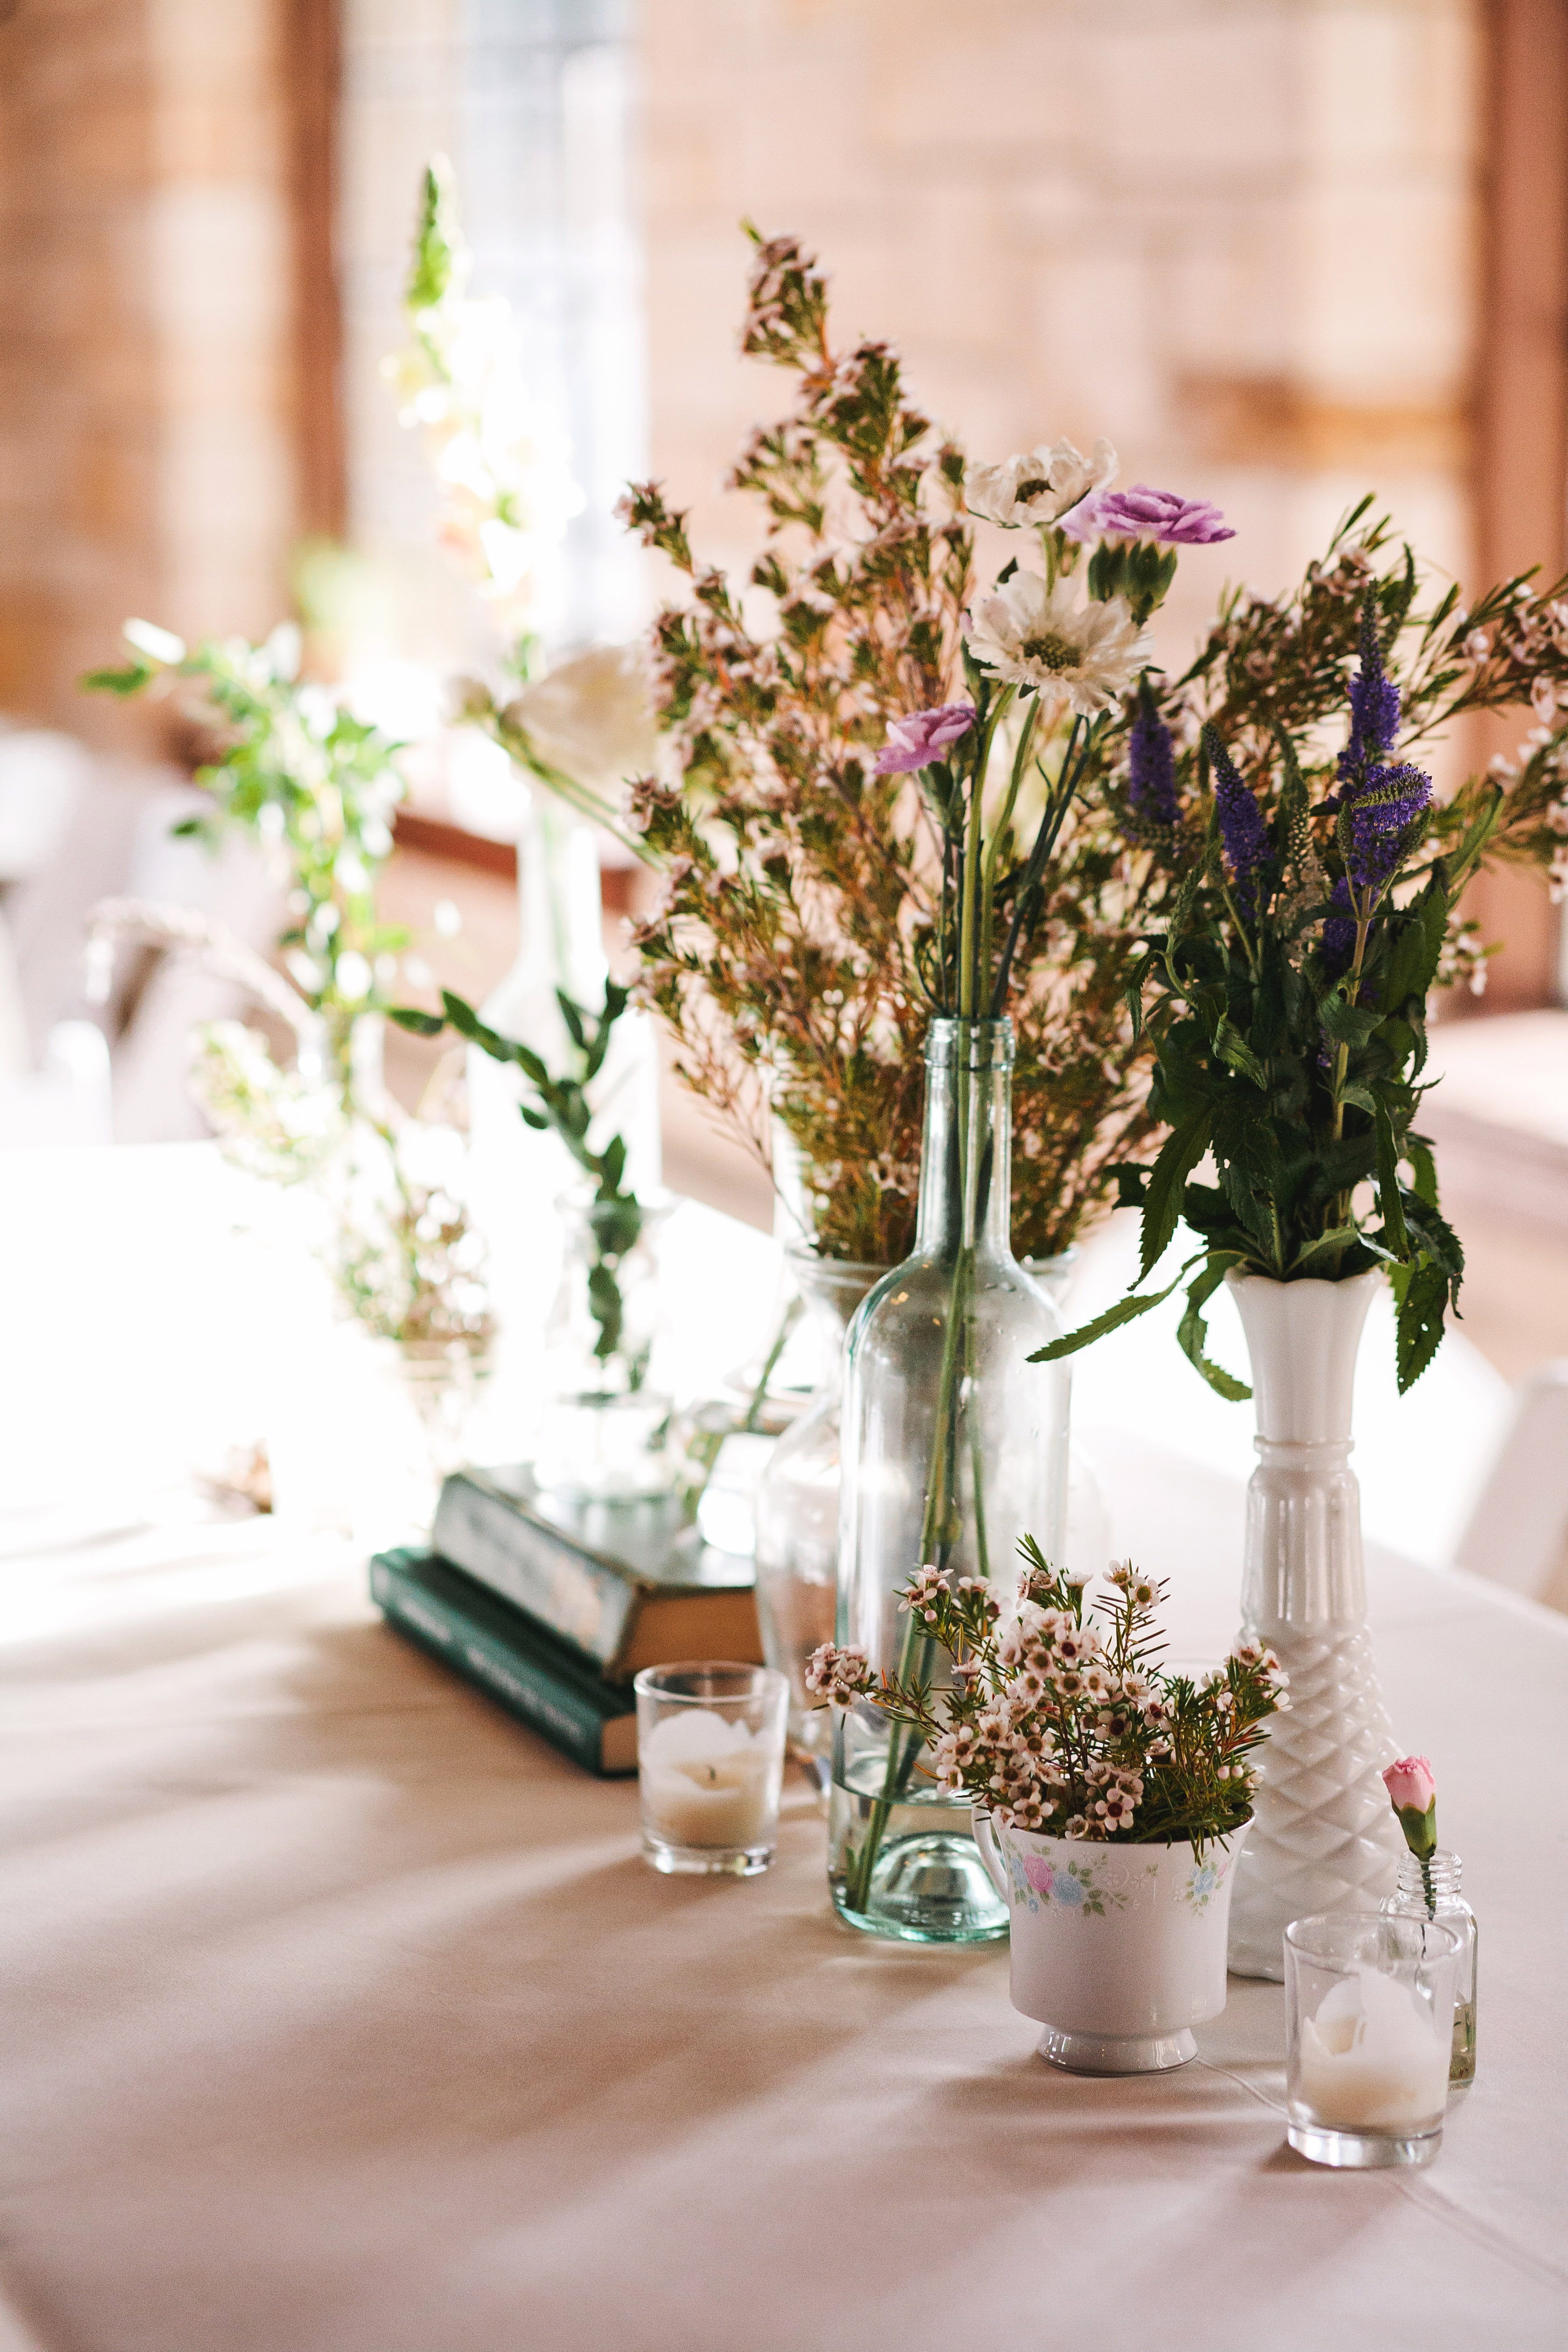 wedding centerpiece white vases candles purple flowers